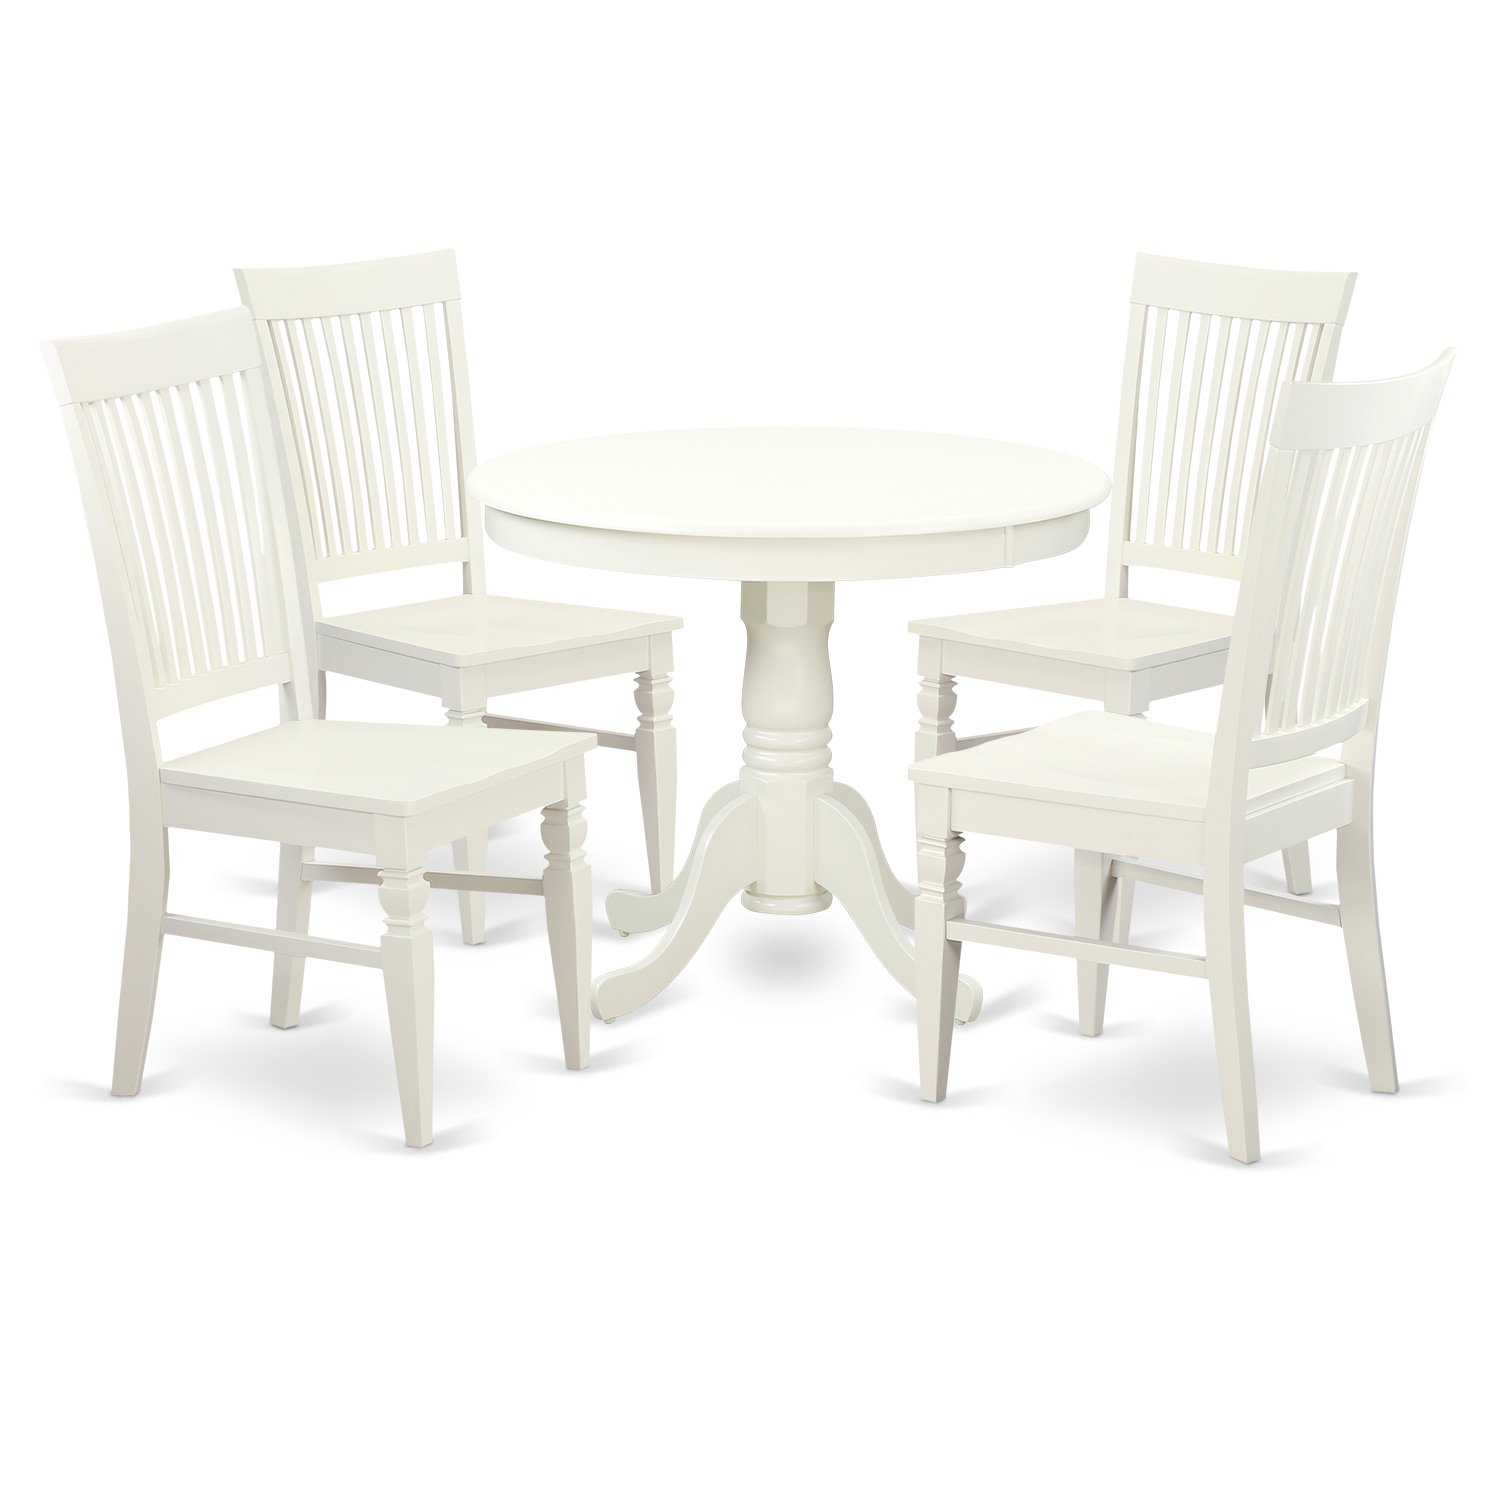 East West Furniture 5 PC Set with One Table & 4 Solid Wood Seat Dinette Chairs in a Distinctive Linen White